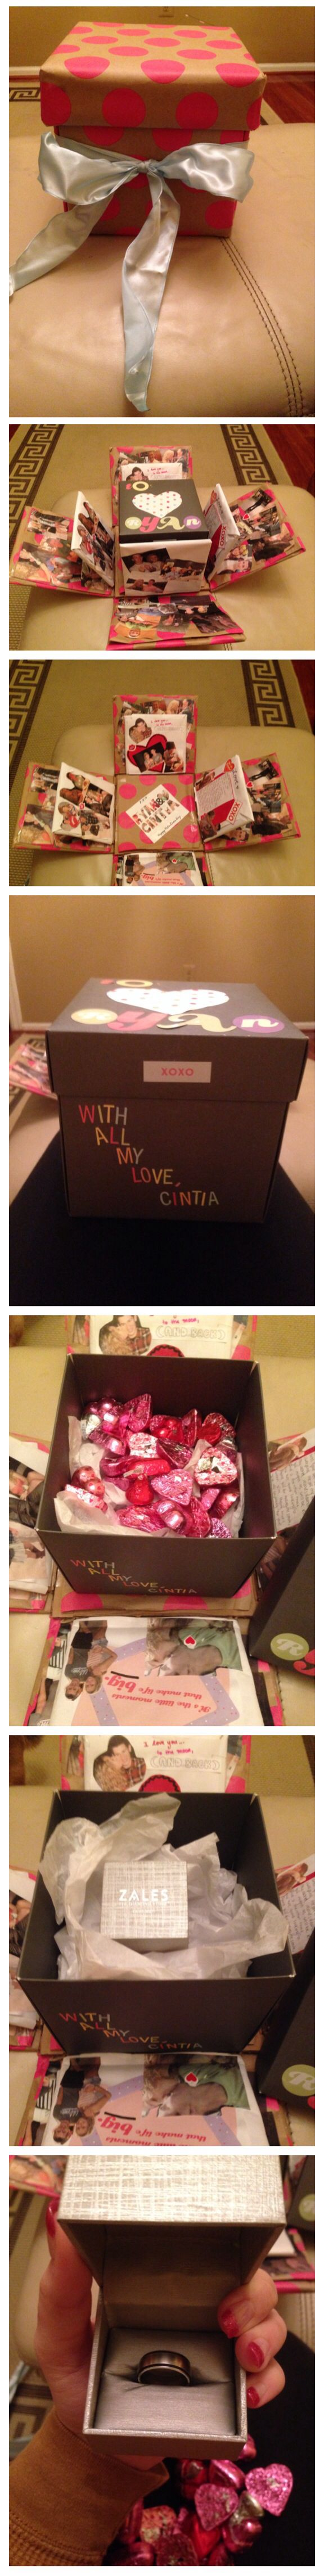 Explosion Box for my boyfriend for Valentine's Day | Cute gifts ...